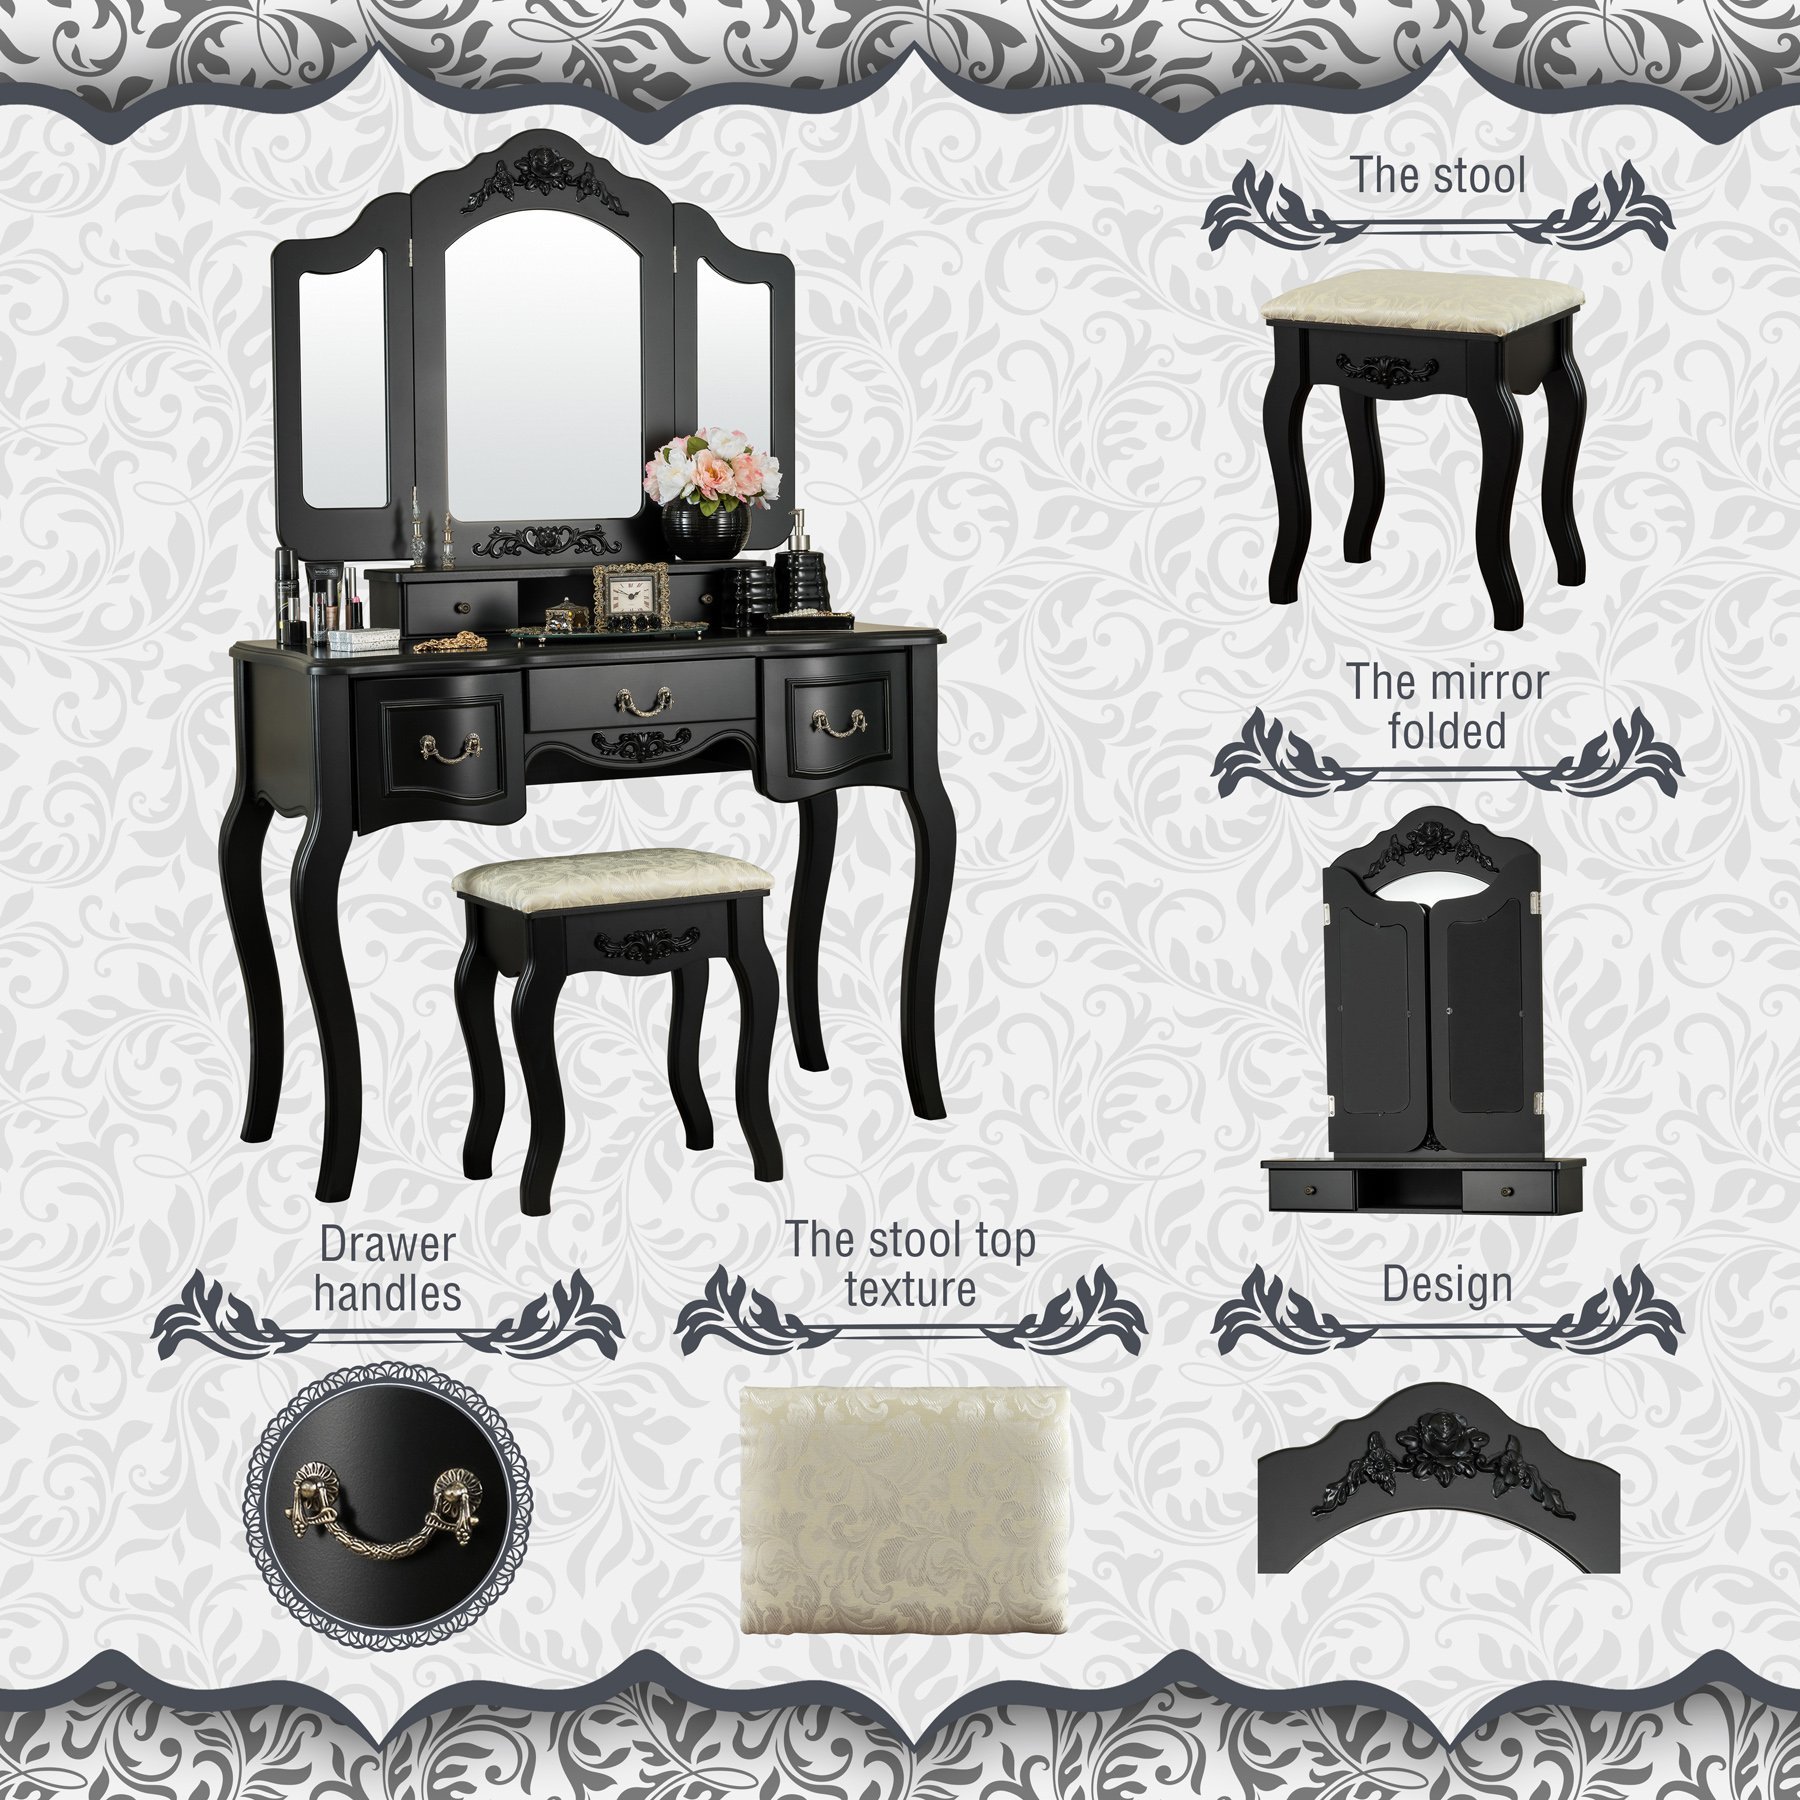 Fineboard CFB-VT04-BK Vanity Beauty Station Makeup Table and Wooden Stool 3 Mirrors and 5 Organization DrawersSet, Black by Fineboard (Image #3)